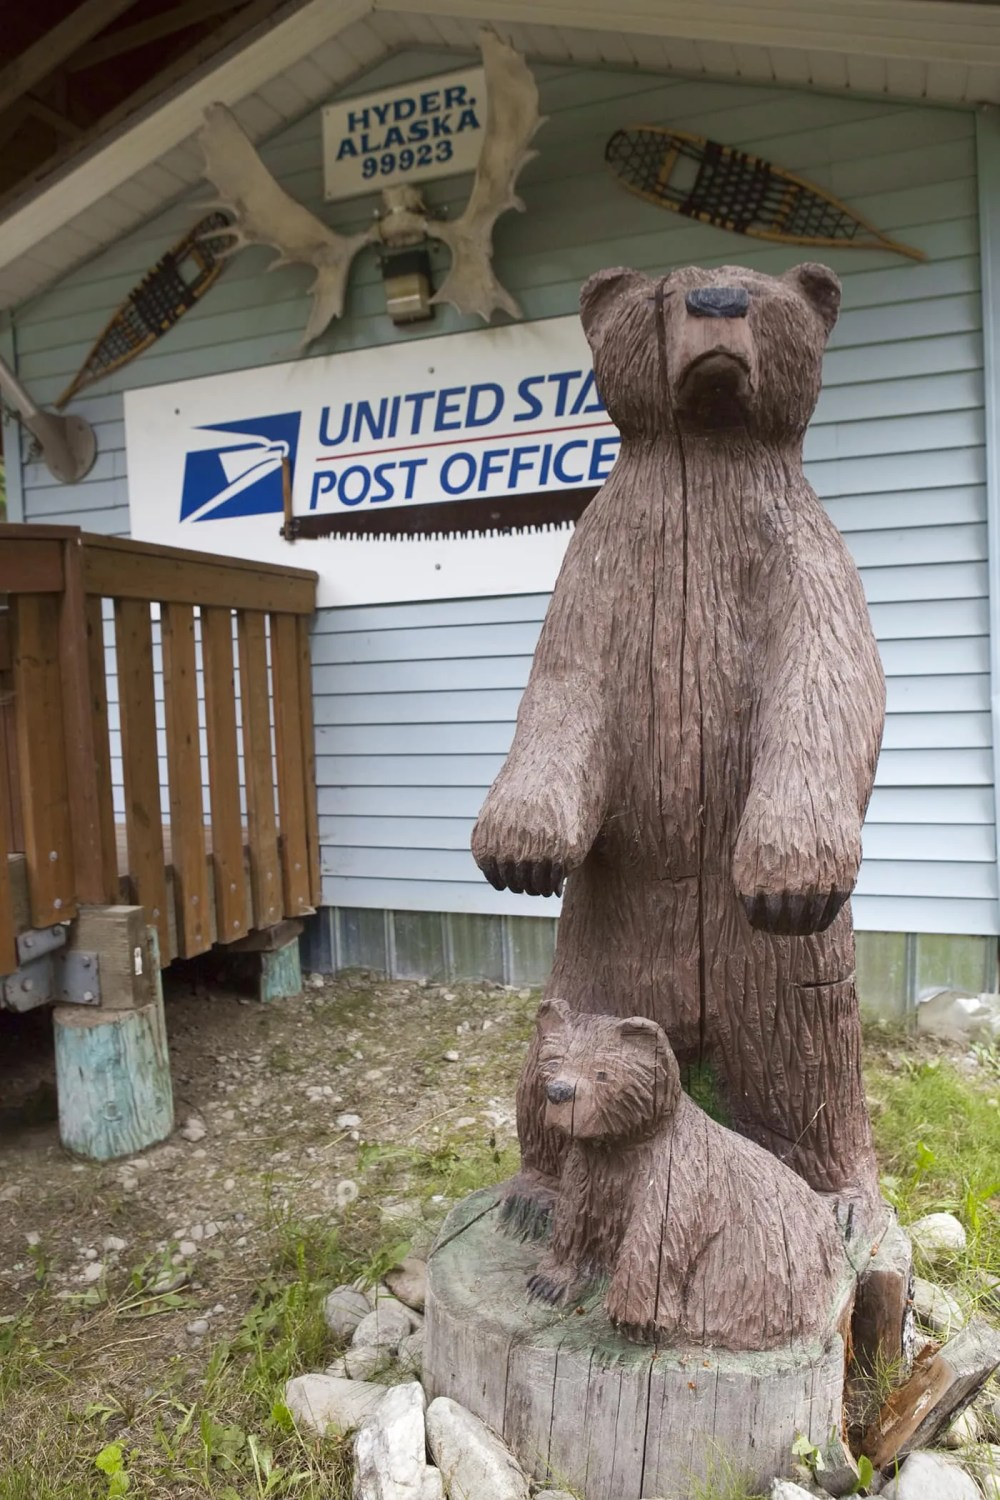 Wooden carved bear and cub at the Hyder, Alaska Post Office.